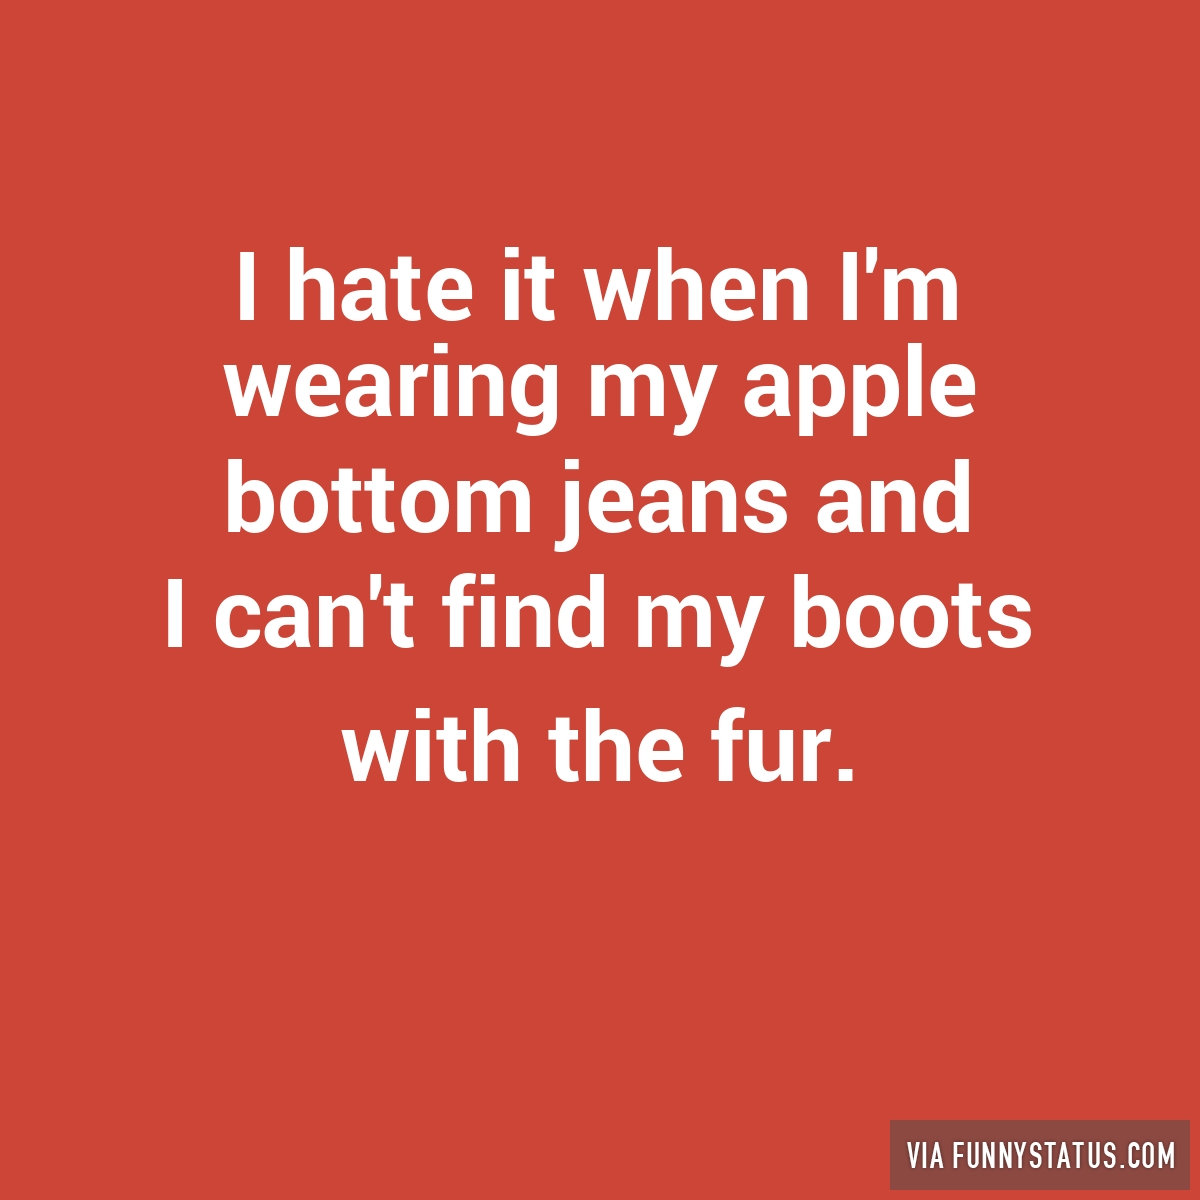 Apple Bottom Jeans Boots With The Fur Song Lyrics - Jeans Am